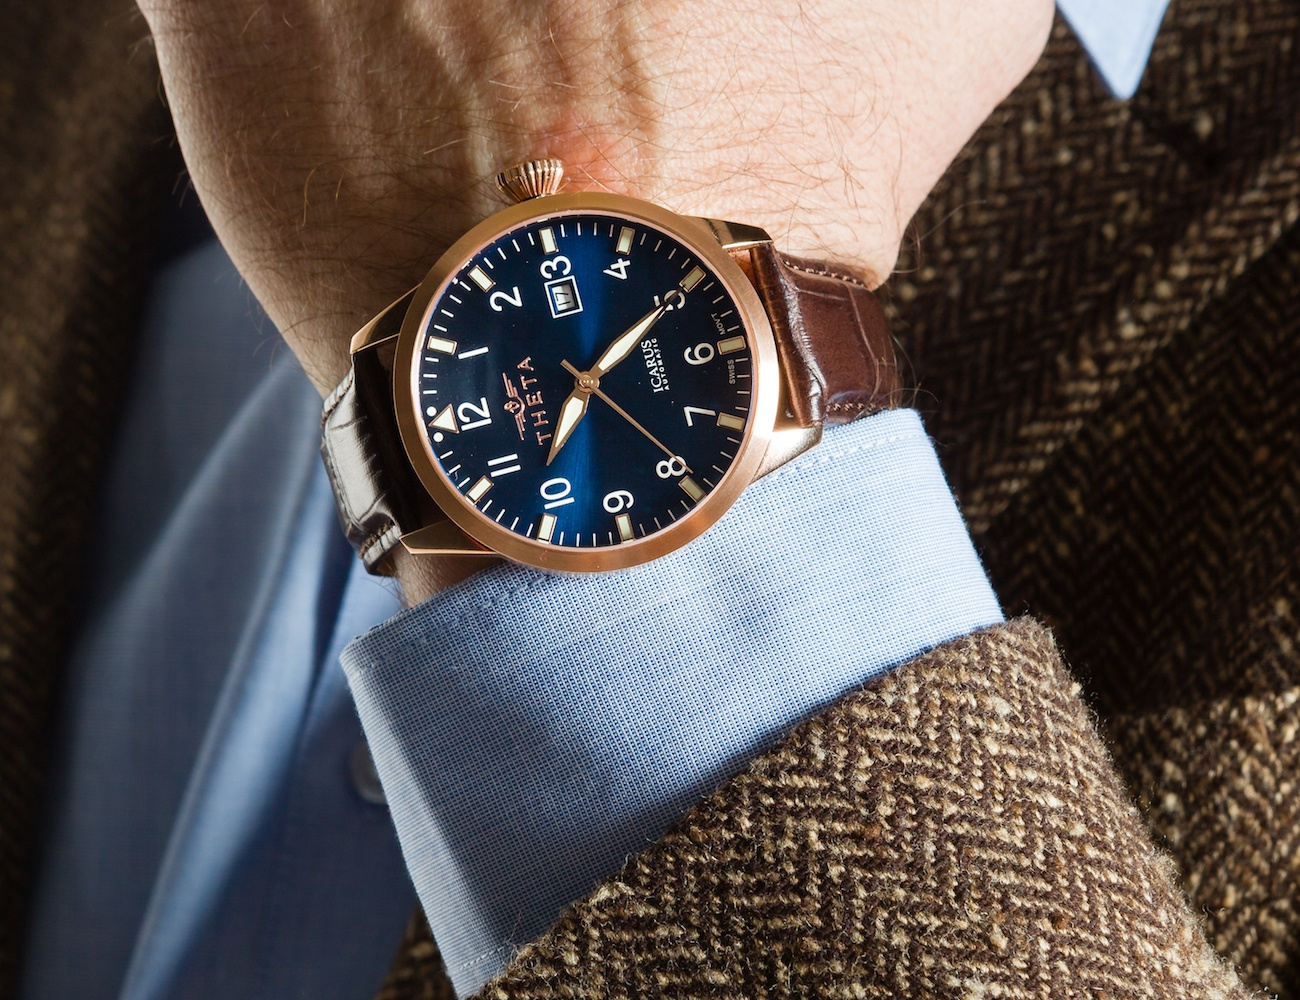 The THETA Icarus Automatic Swiss Watch Features 25 Jewels